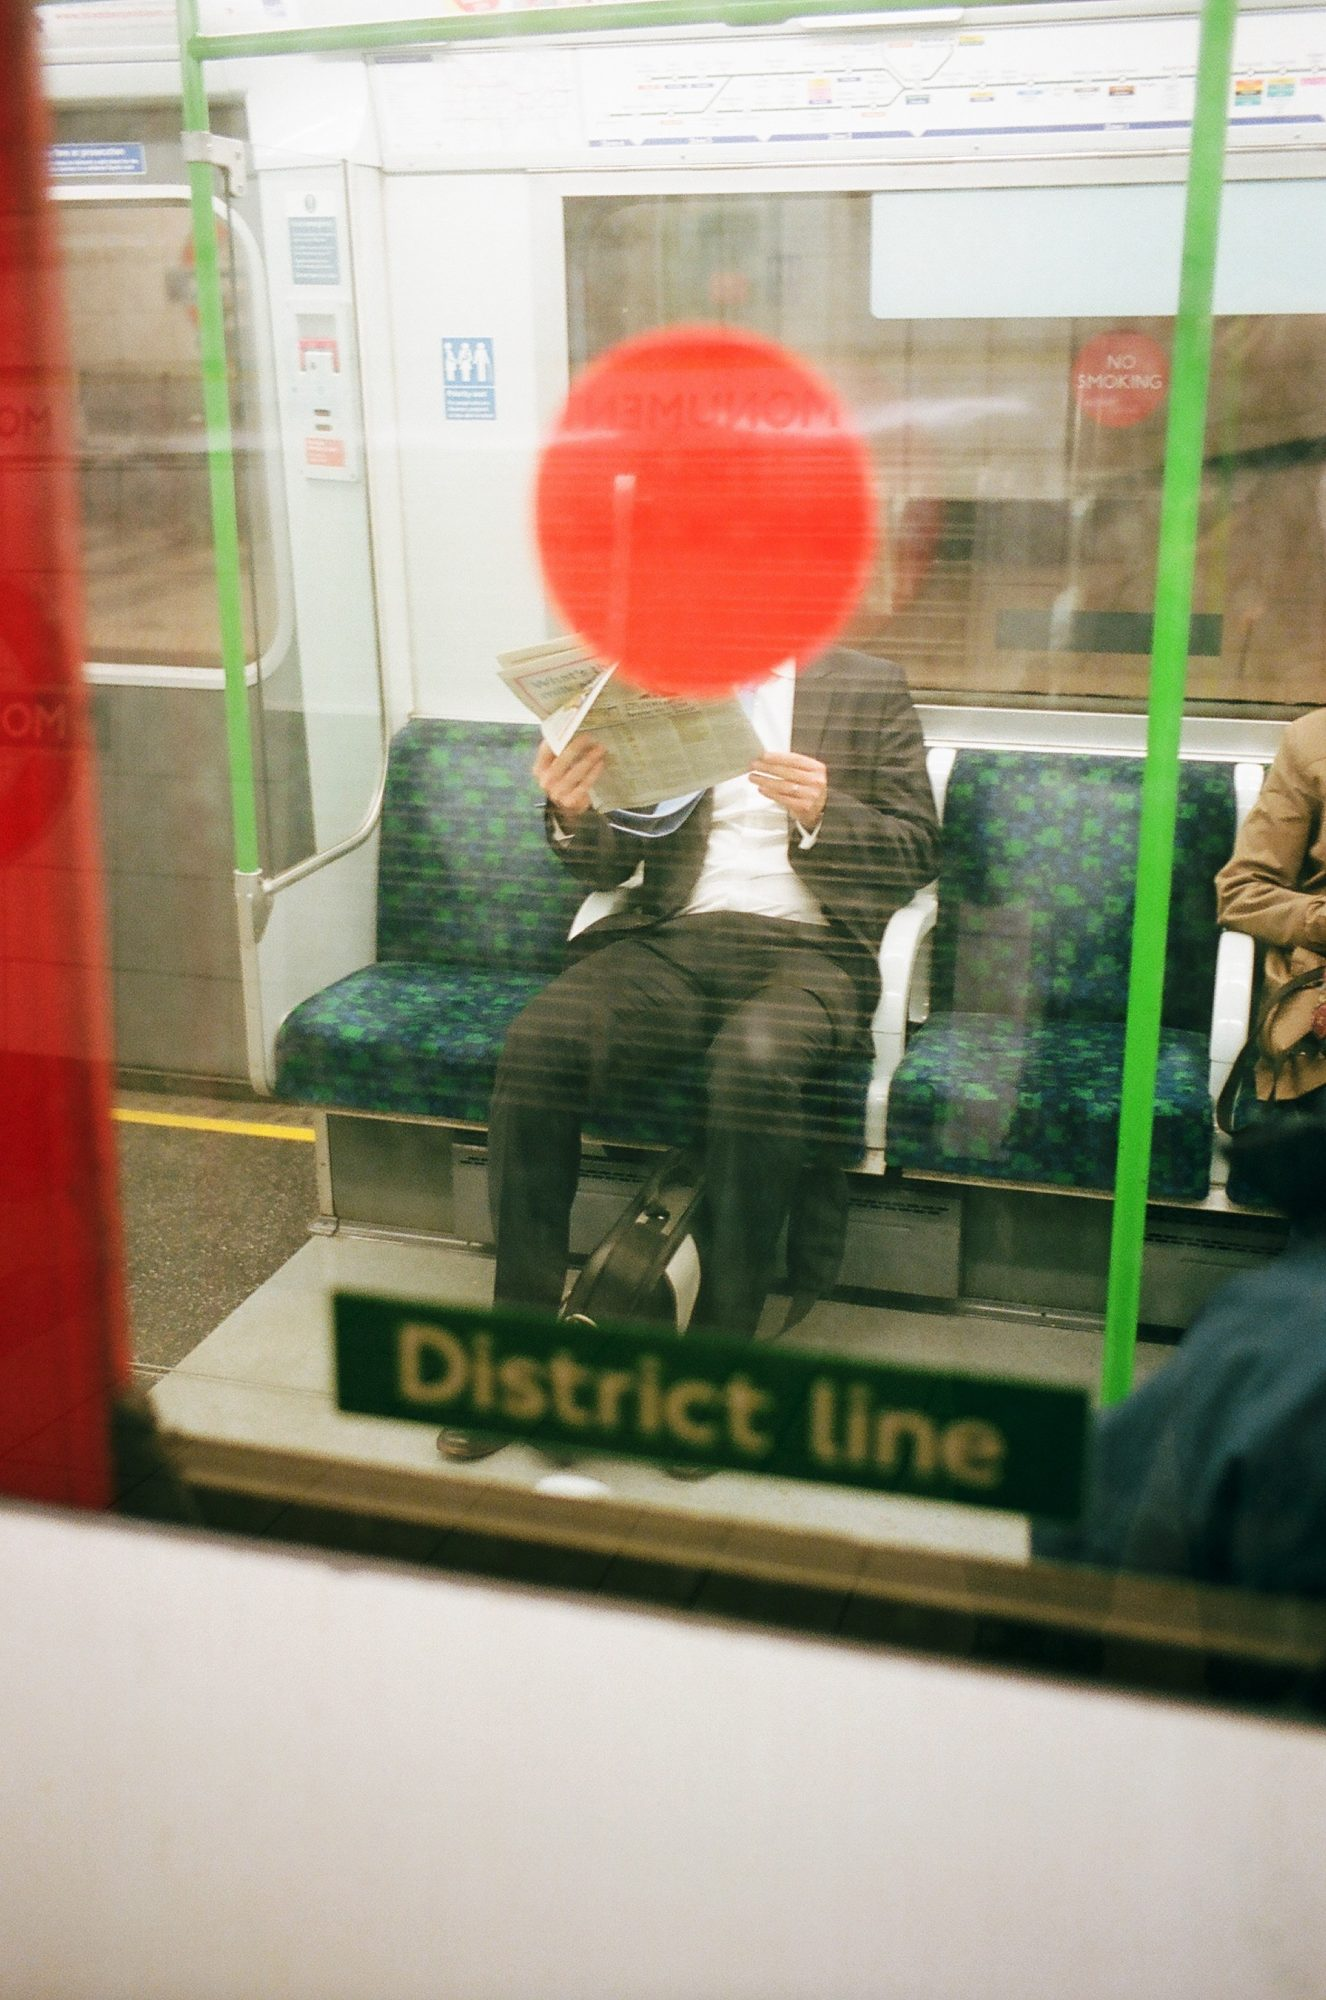 Red dot on head of suit. London tube, 2014